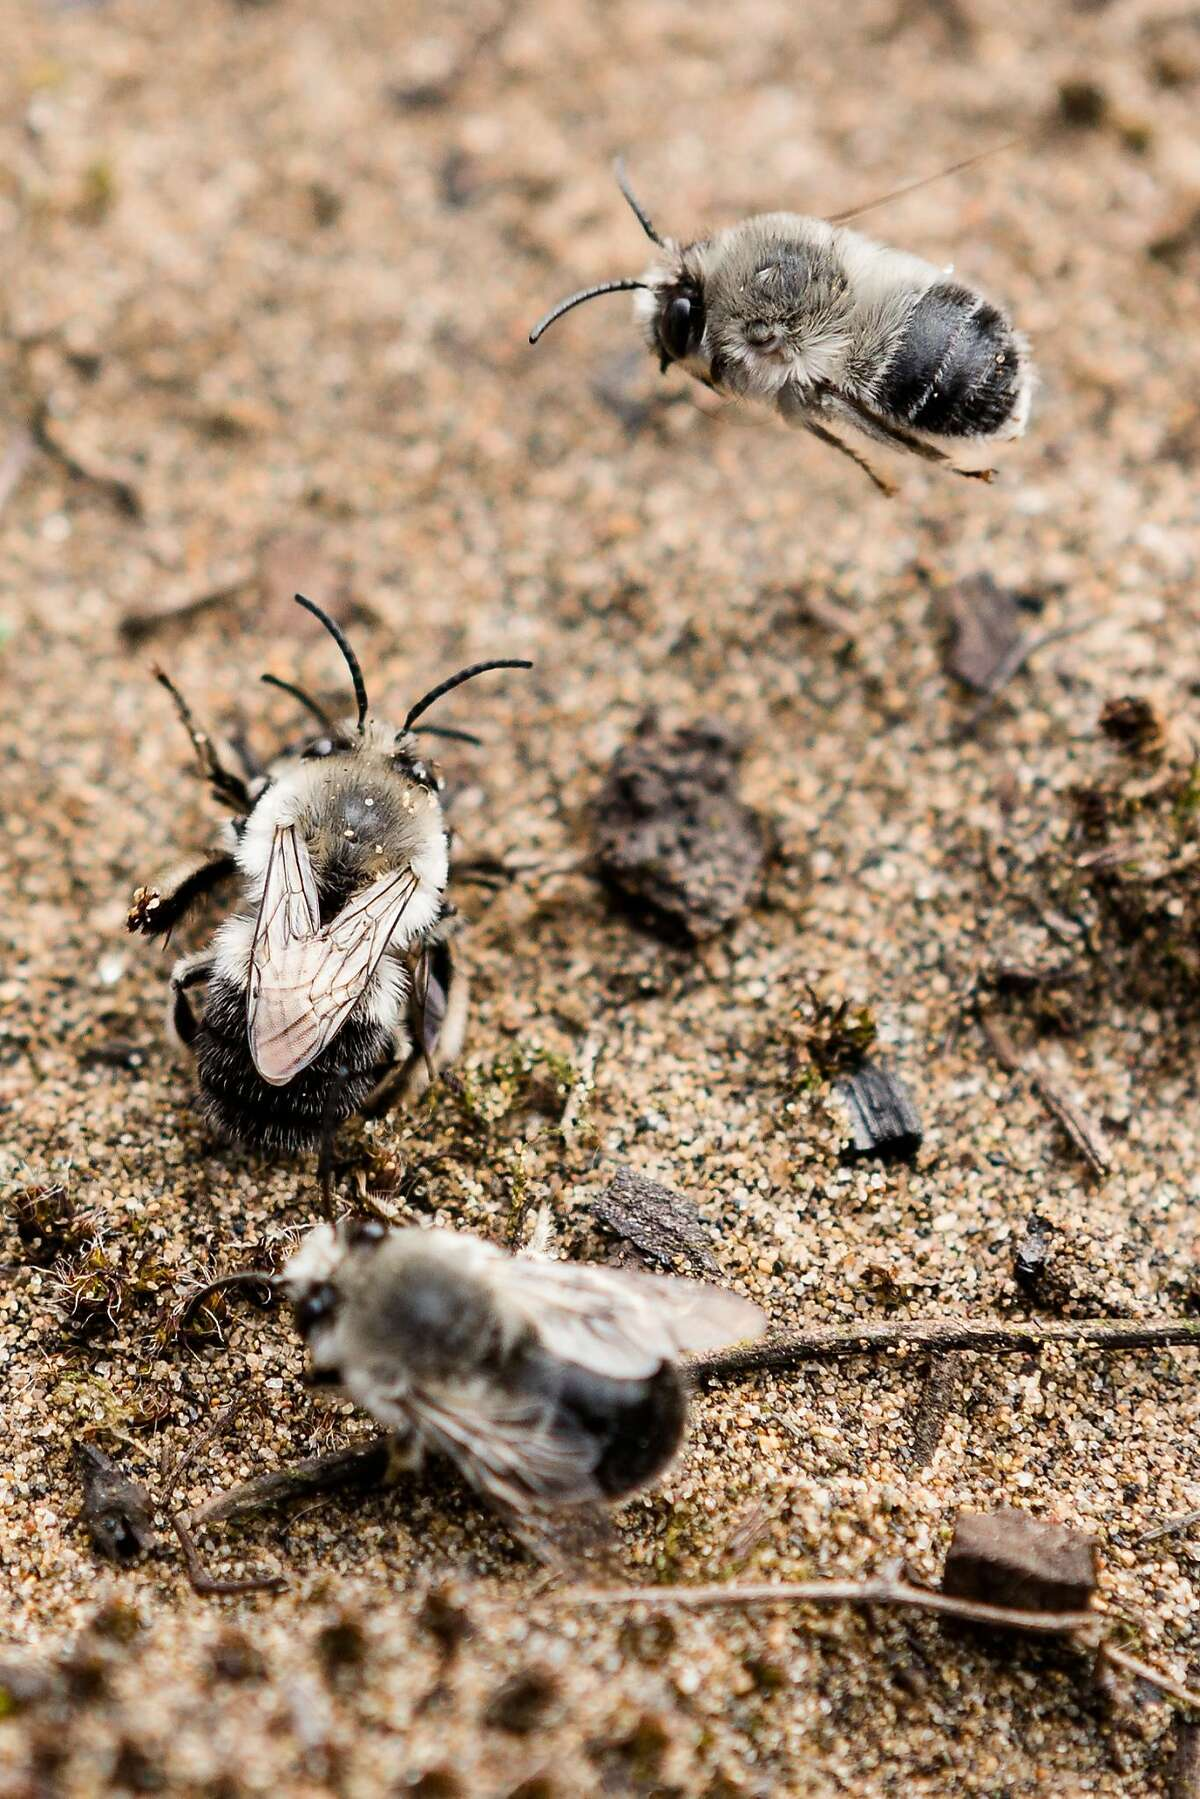 Silver Digger Bees mate at the restored sand dunes in Presidio, San Francisco, California, on Tuesday, March 26, 2019.